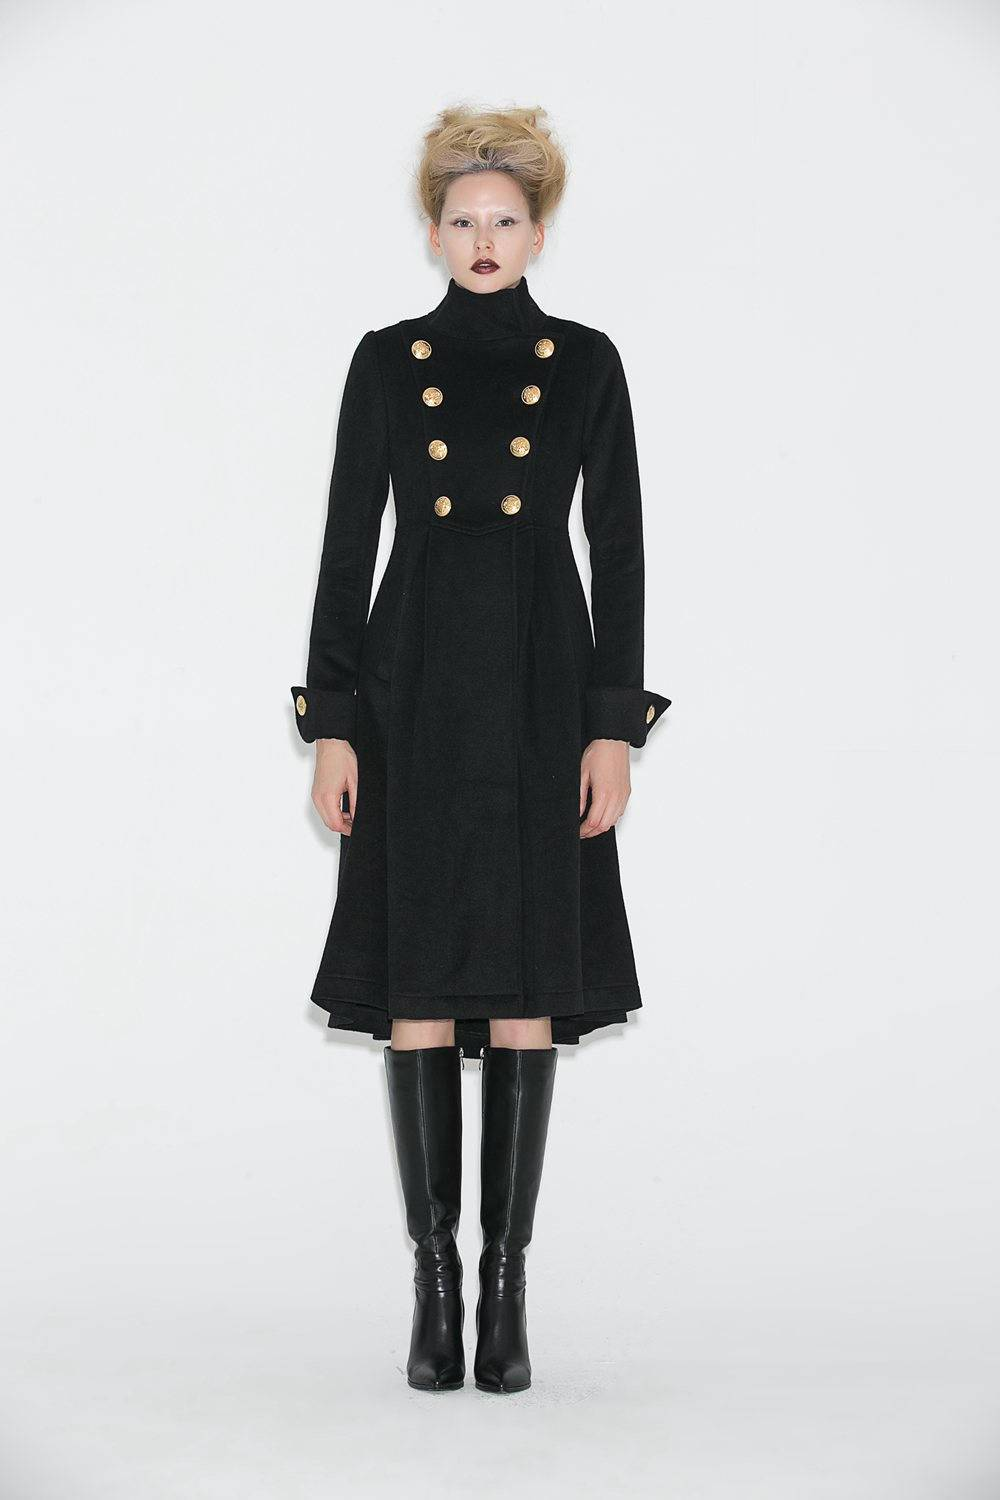 black coat, wool coat, womens coats, winter coat, military Coat, Brass buttons coat, maxi coat, long coat, jacket, Asymmetrical coat C664